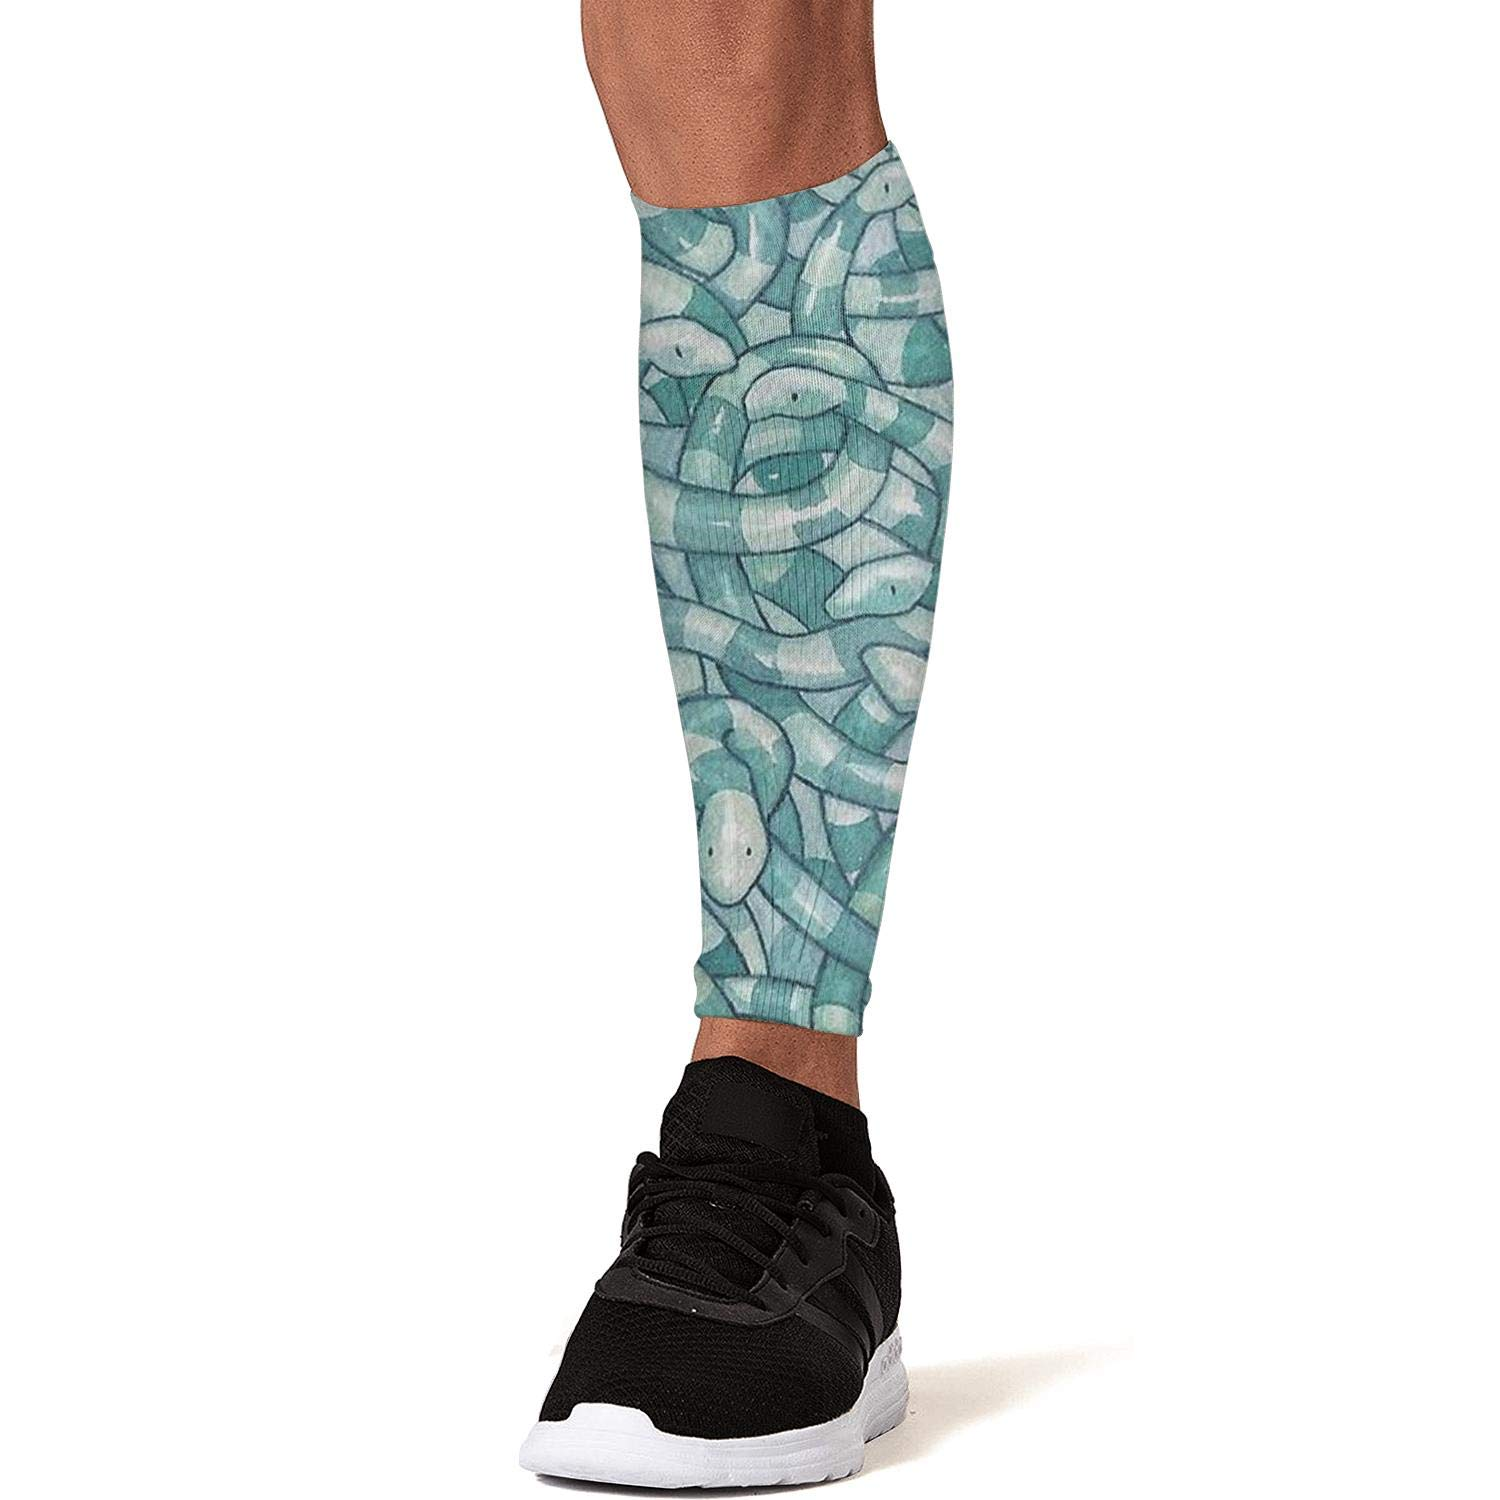 Smilelolly Serpent Snakes Calf Compression Sleeves Helps Shin Splint Leg Sleeves for Men Women